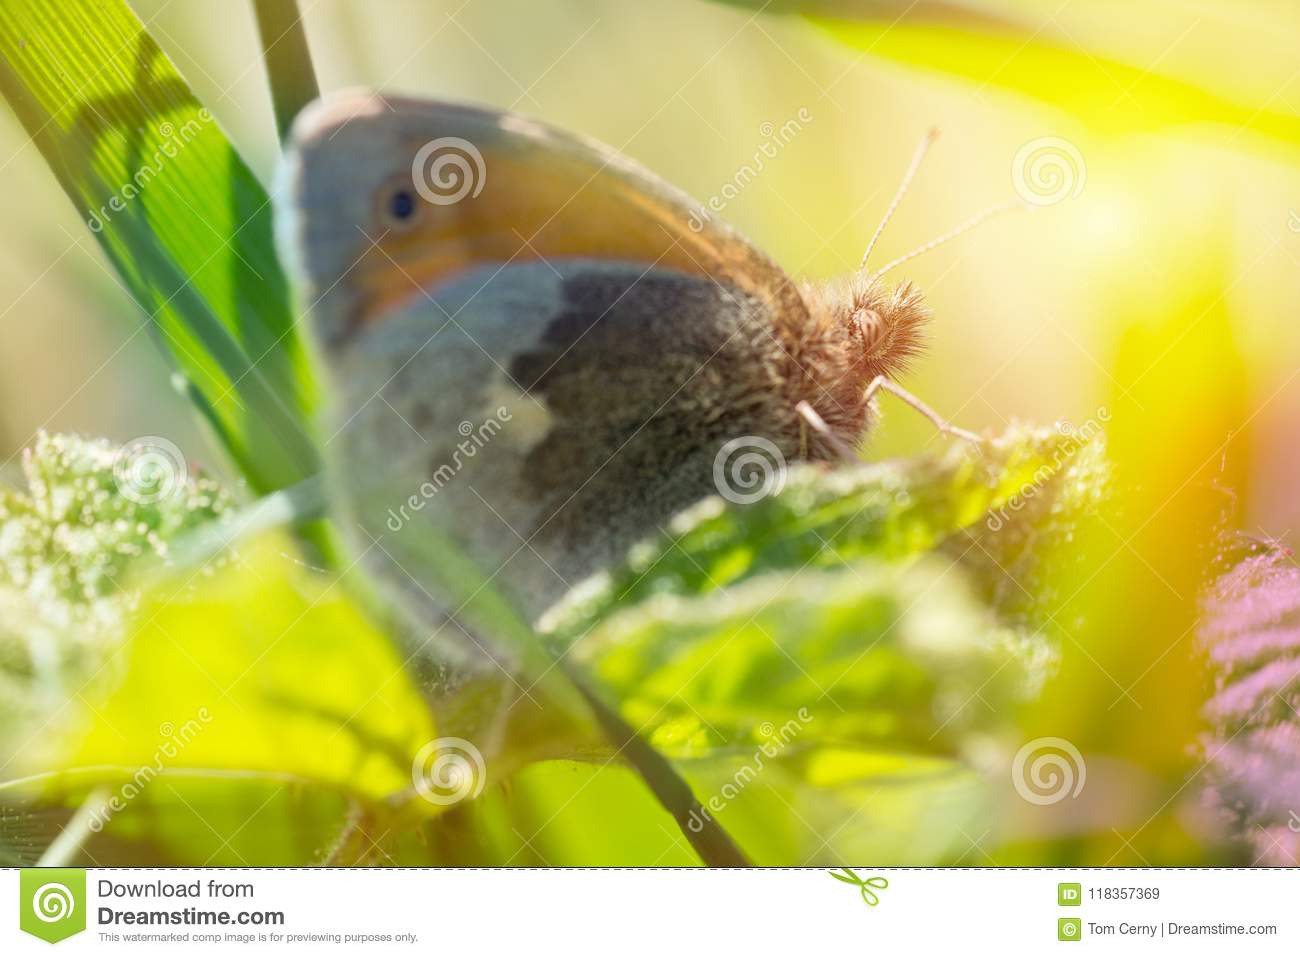 Nice small orange butterfly sitting on grass, colored photo